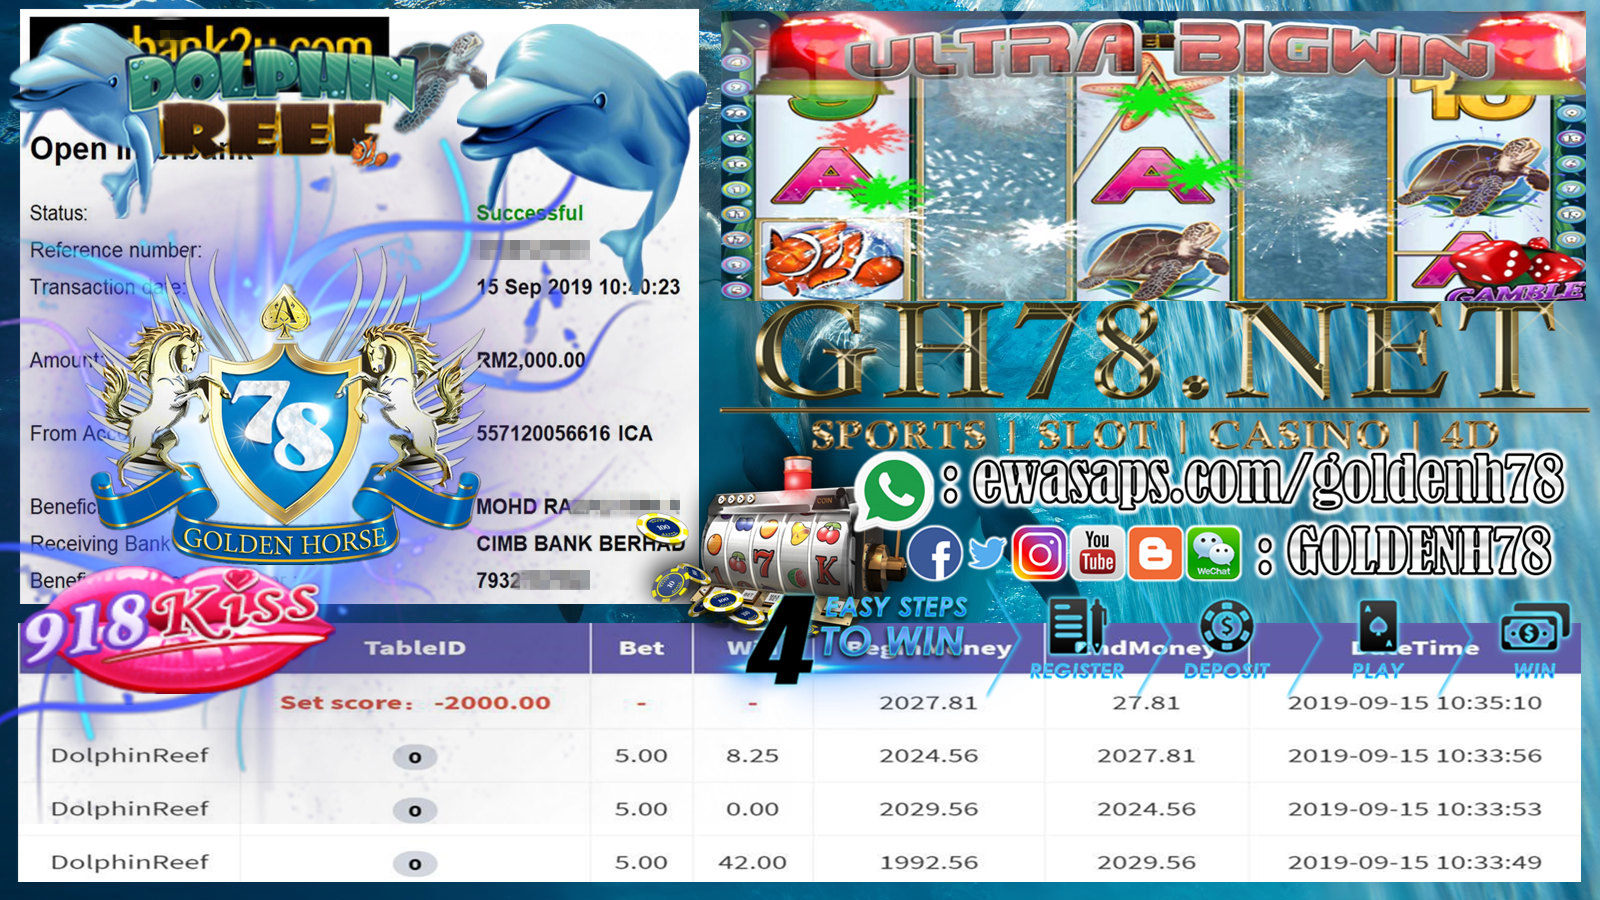 MEMBER MAIN GAME DOLPHINREEF MINTA CUCI RM2000 !!!